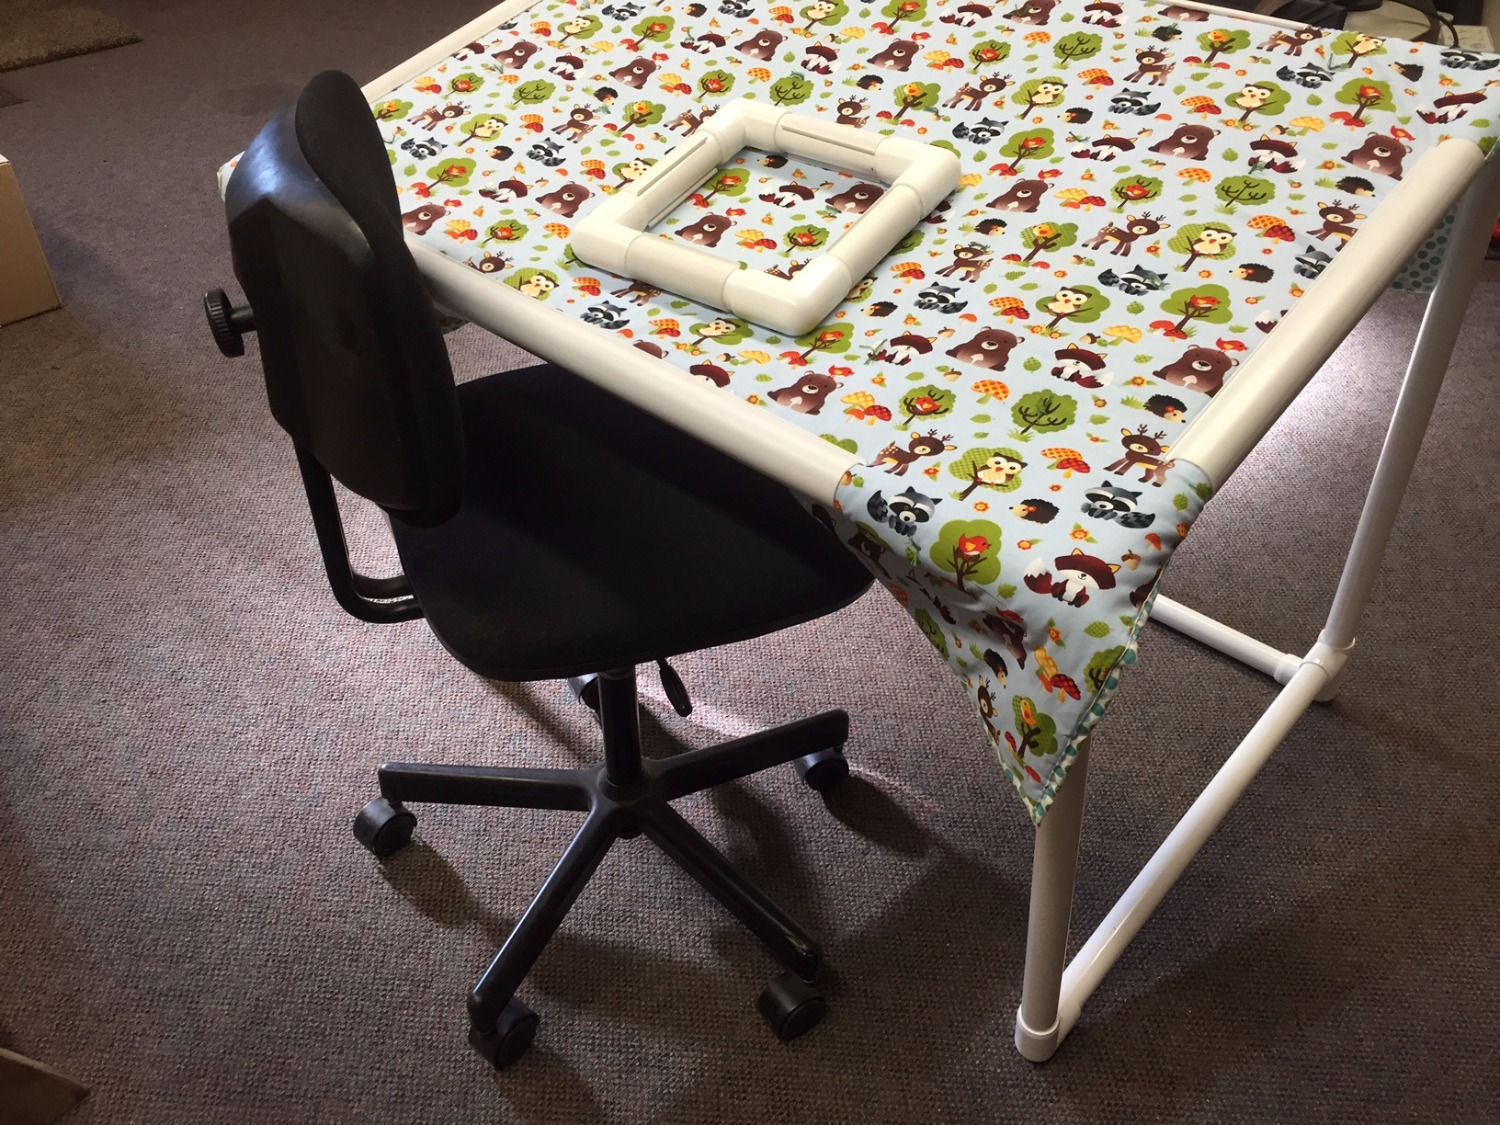 PVC Quilting Frame | Snap Clamp | California | Circo Innovations